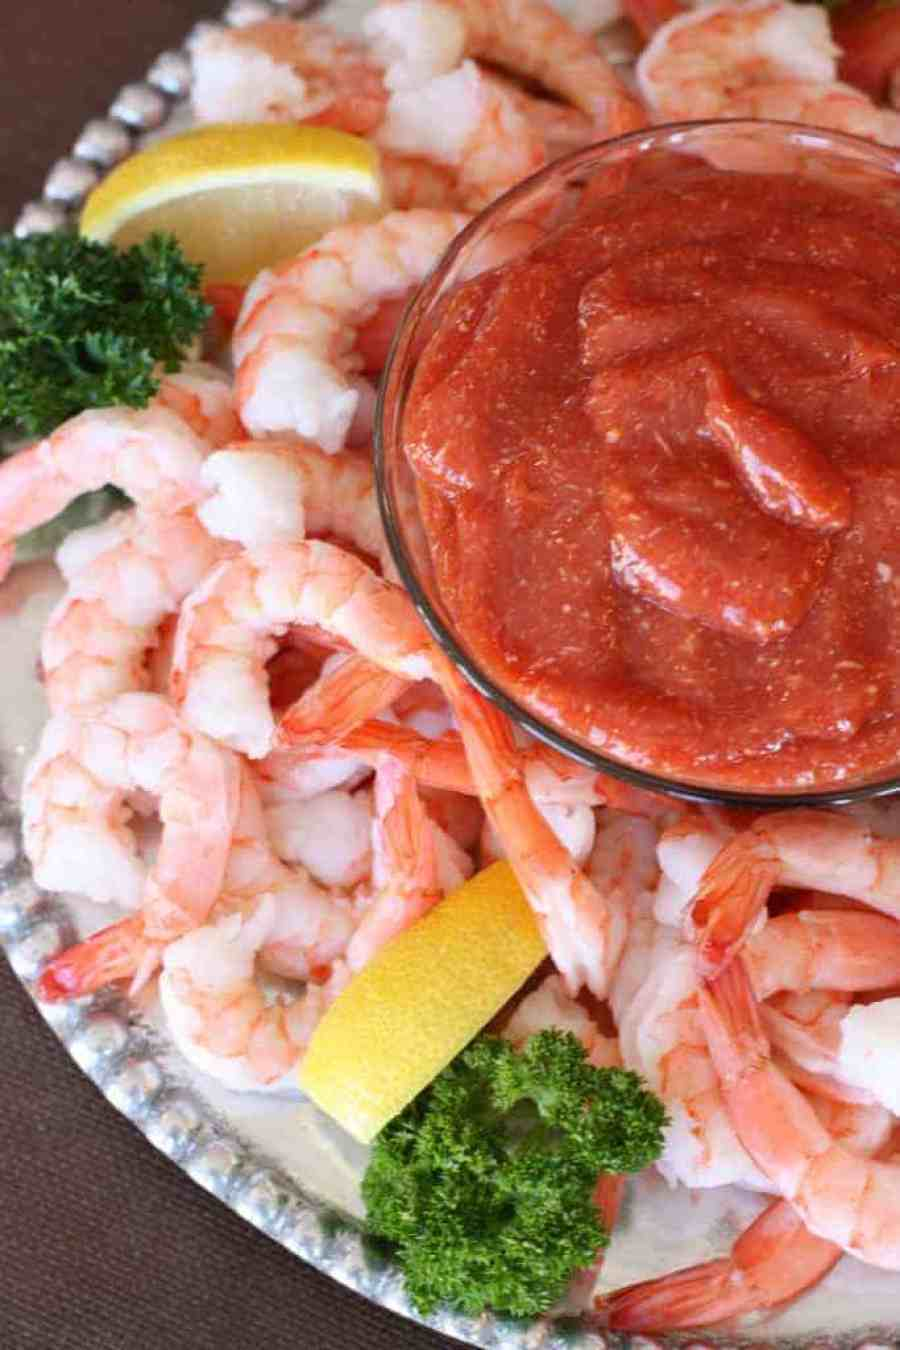 3 ingredient SHRIMP COCKTAIL SAUCE that's easy and amazing homemade. You won't buy it from the store ever again! | Tastes Better From Scratch